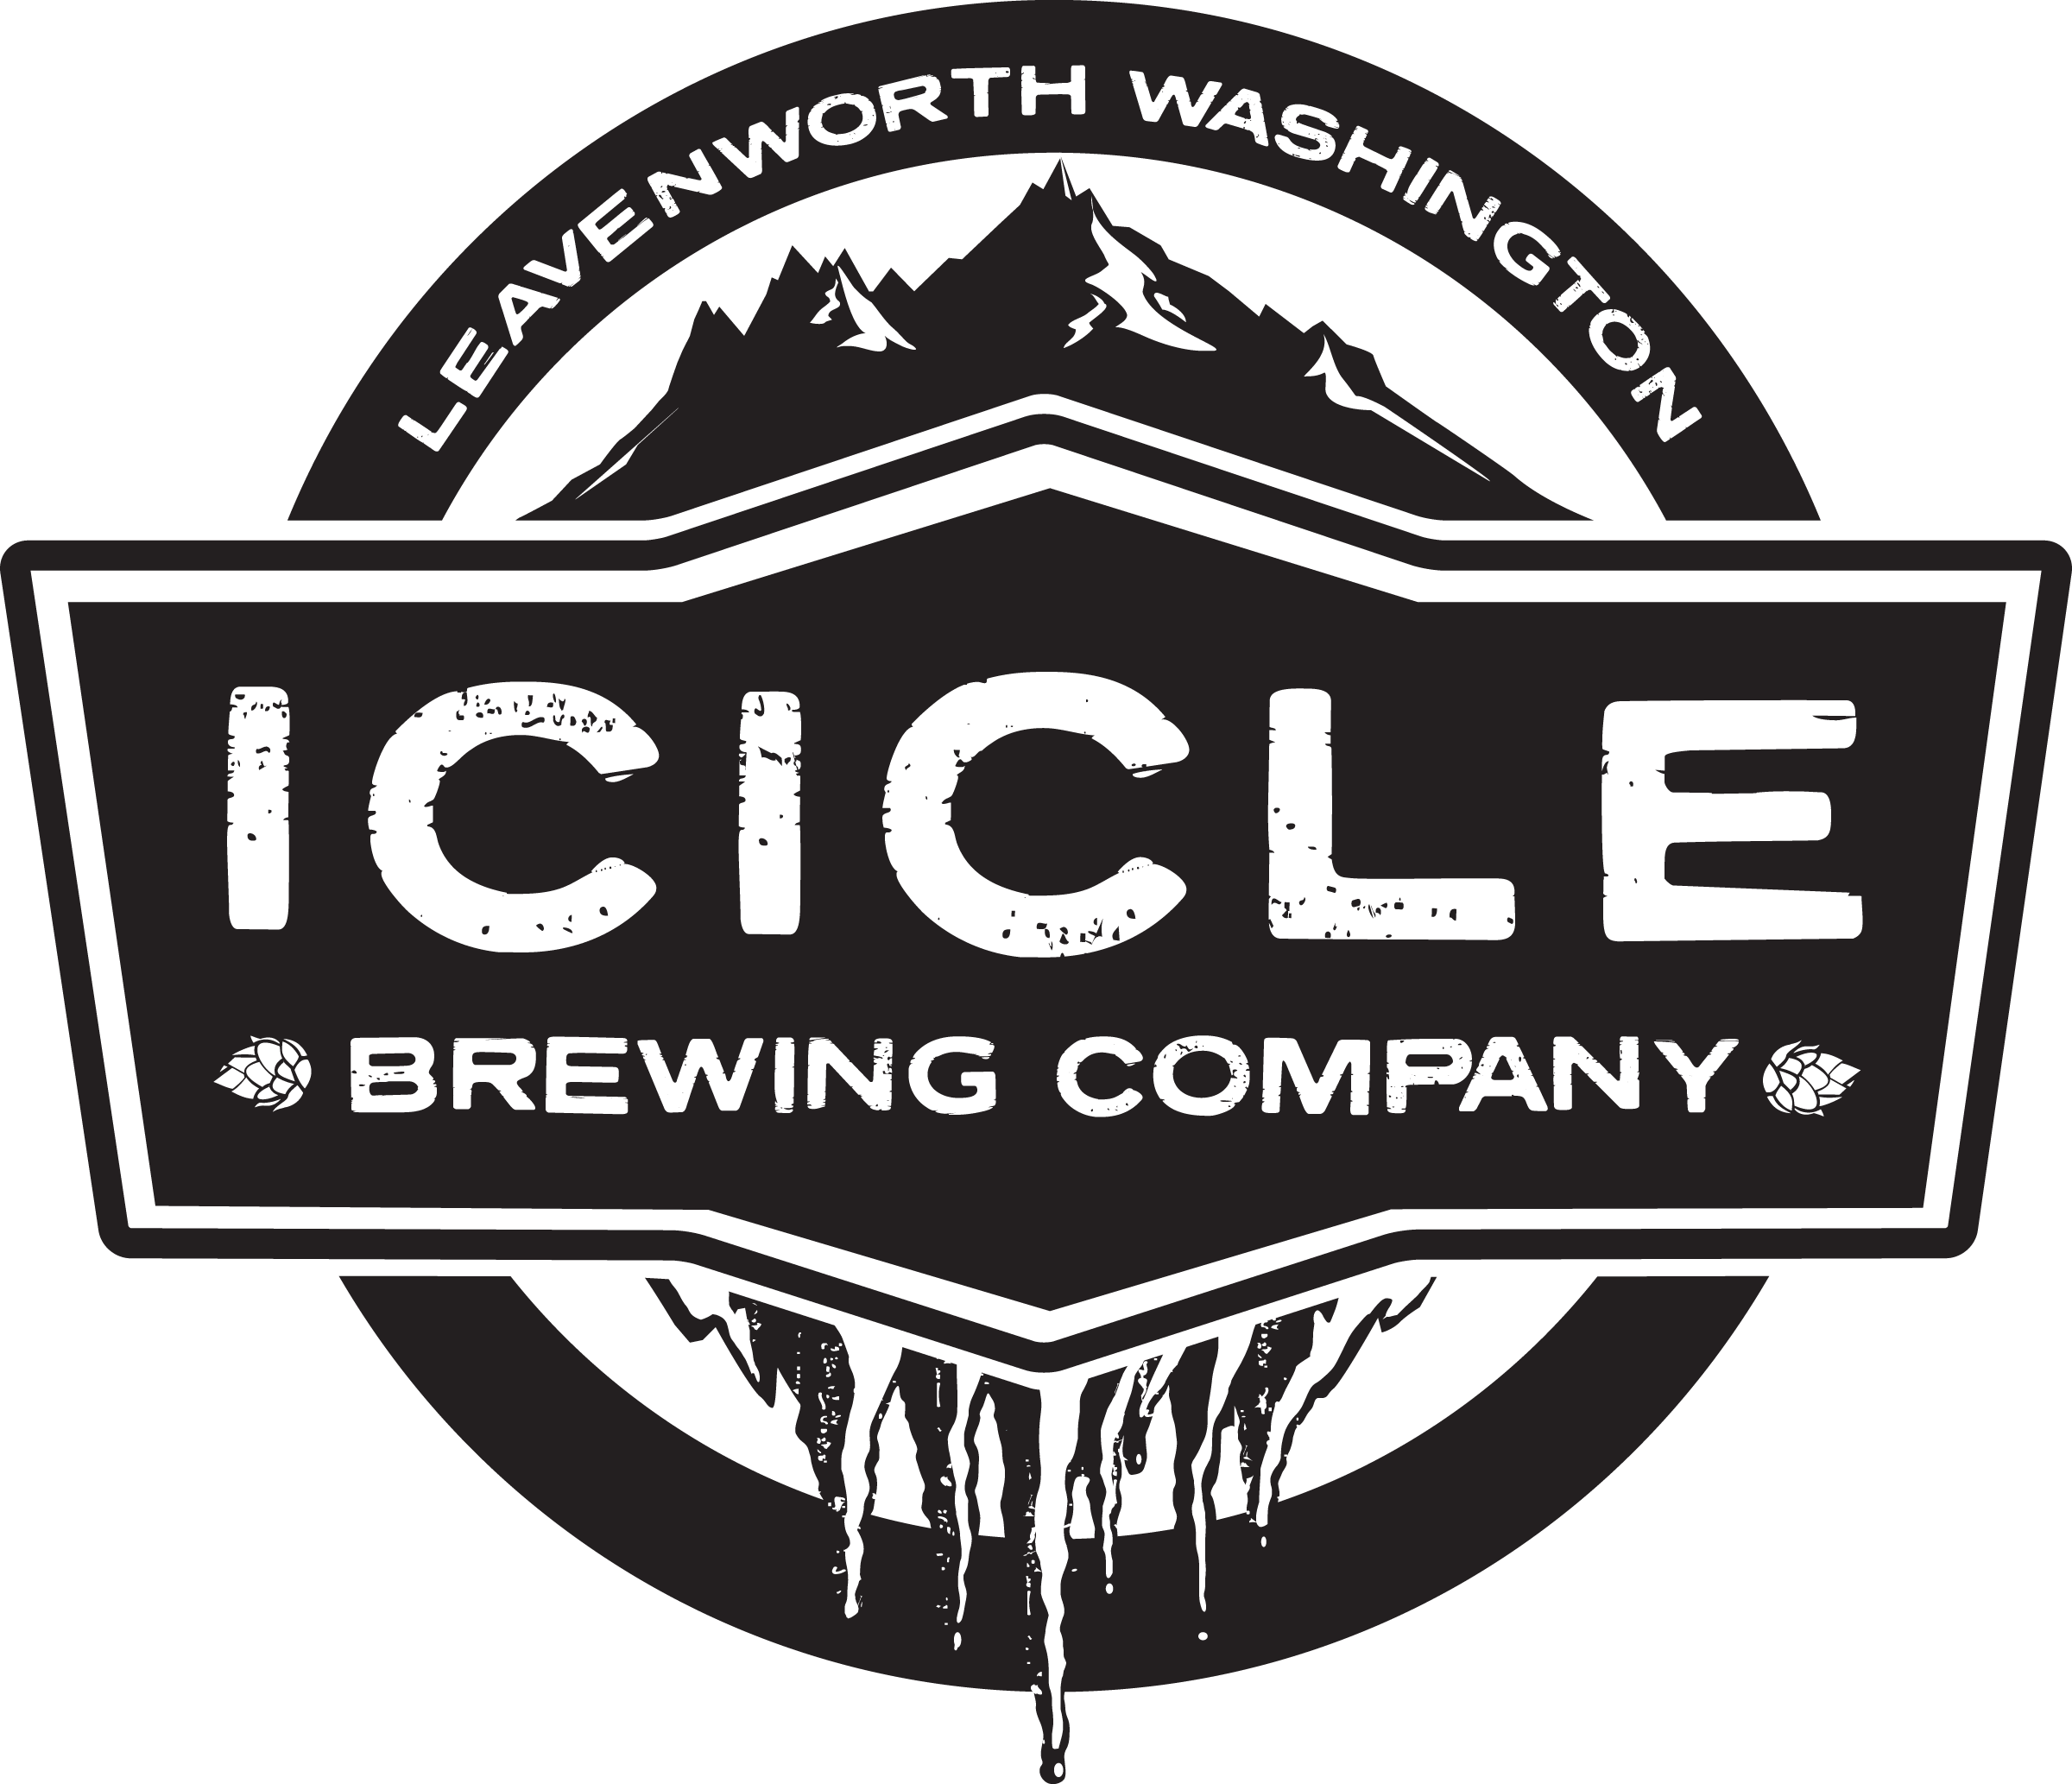 Png - Icicle Brewing Company Logo (2400x2066), Png Download